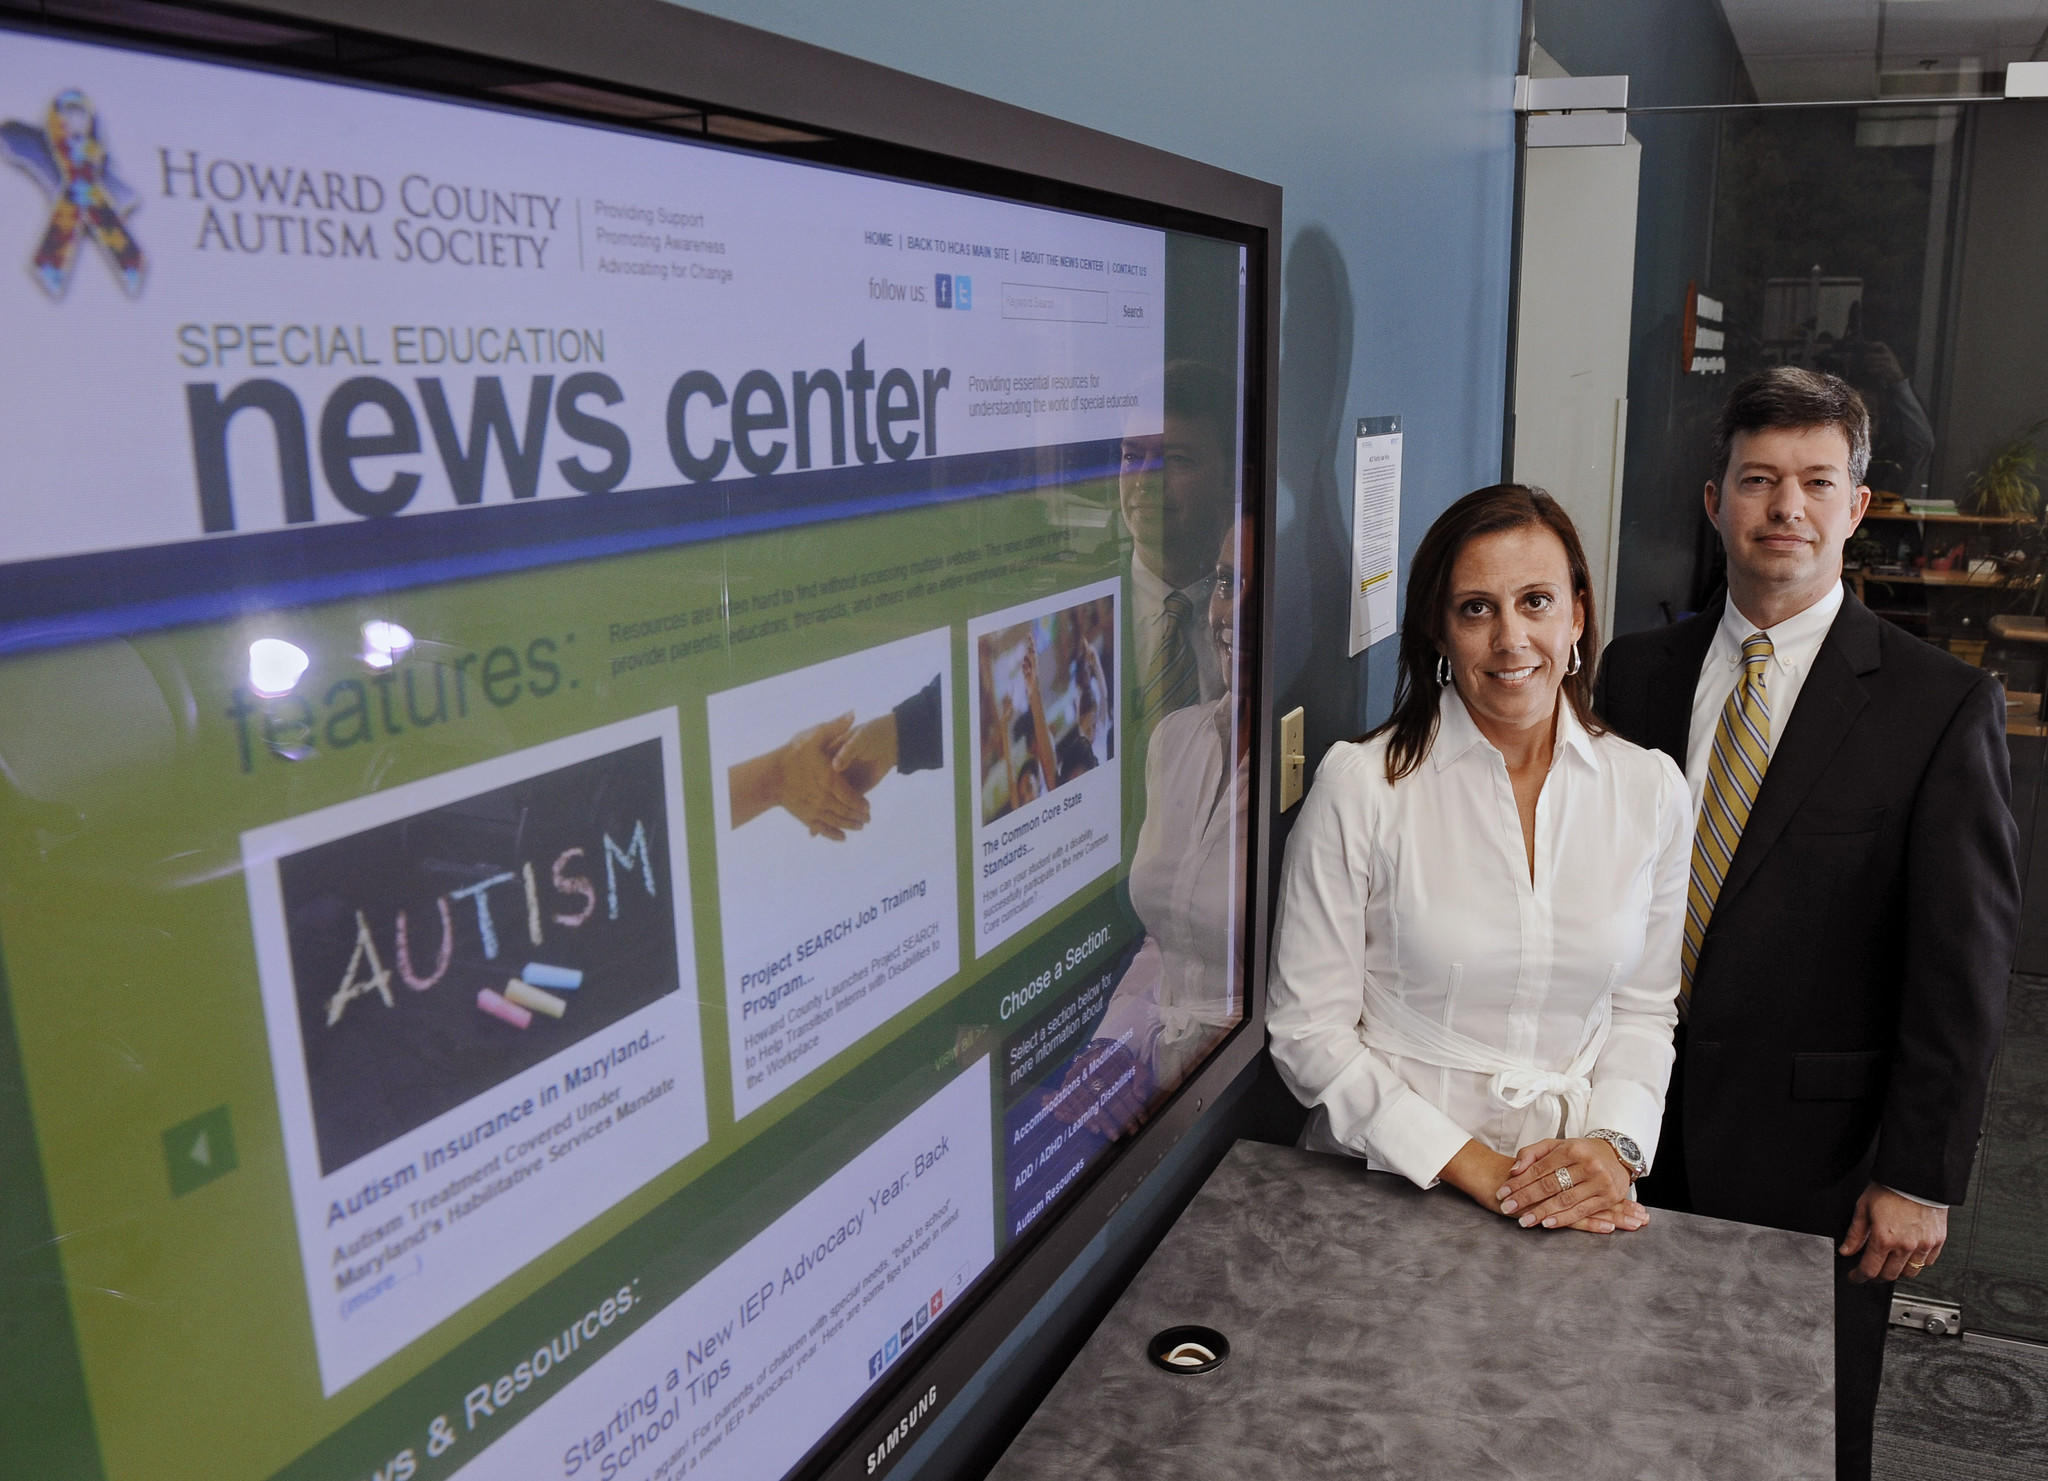 Howard autism group launches online resource center